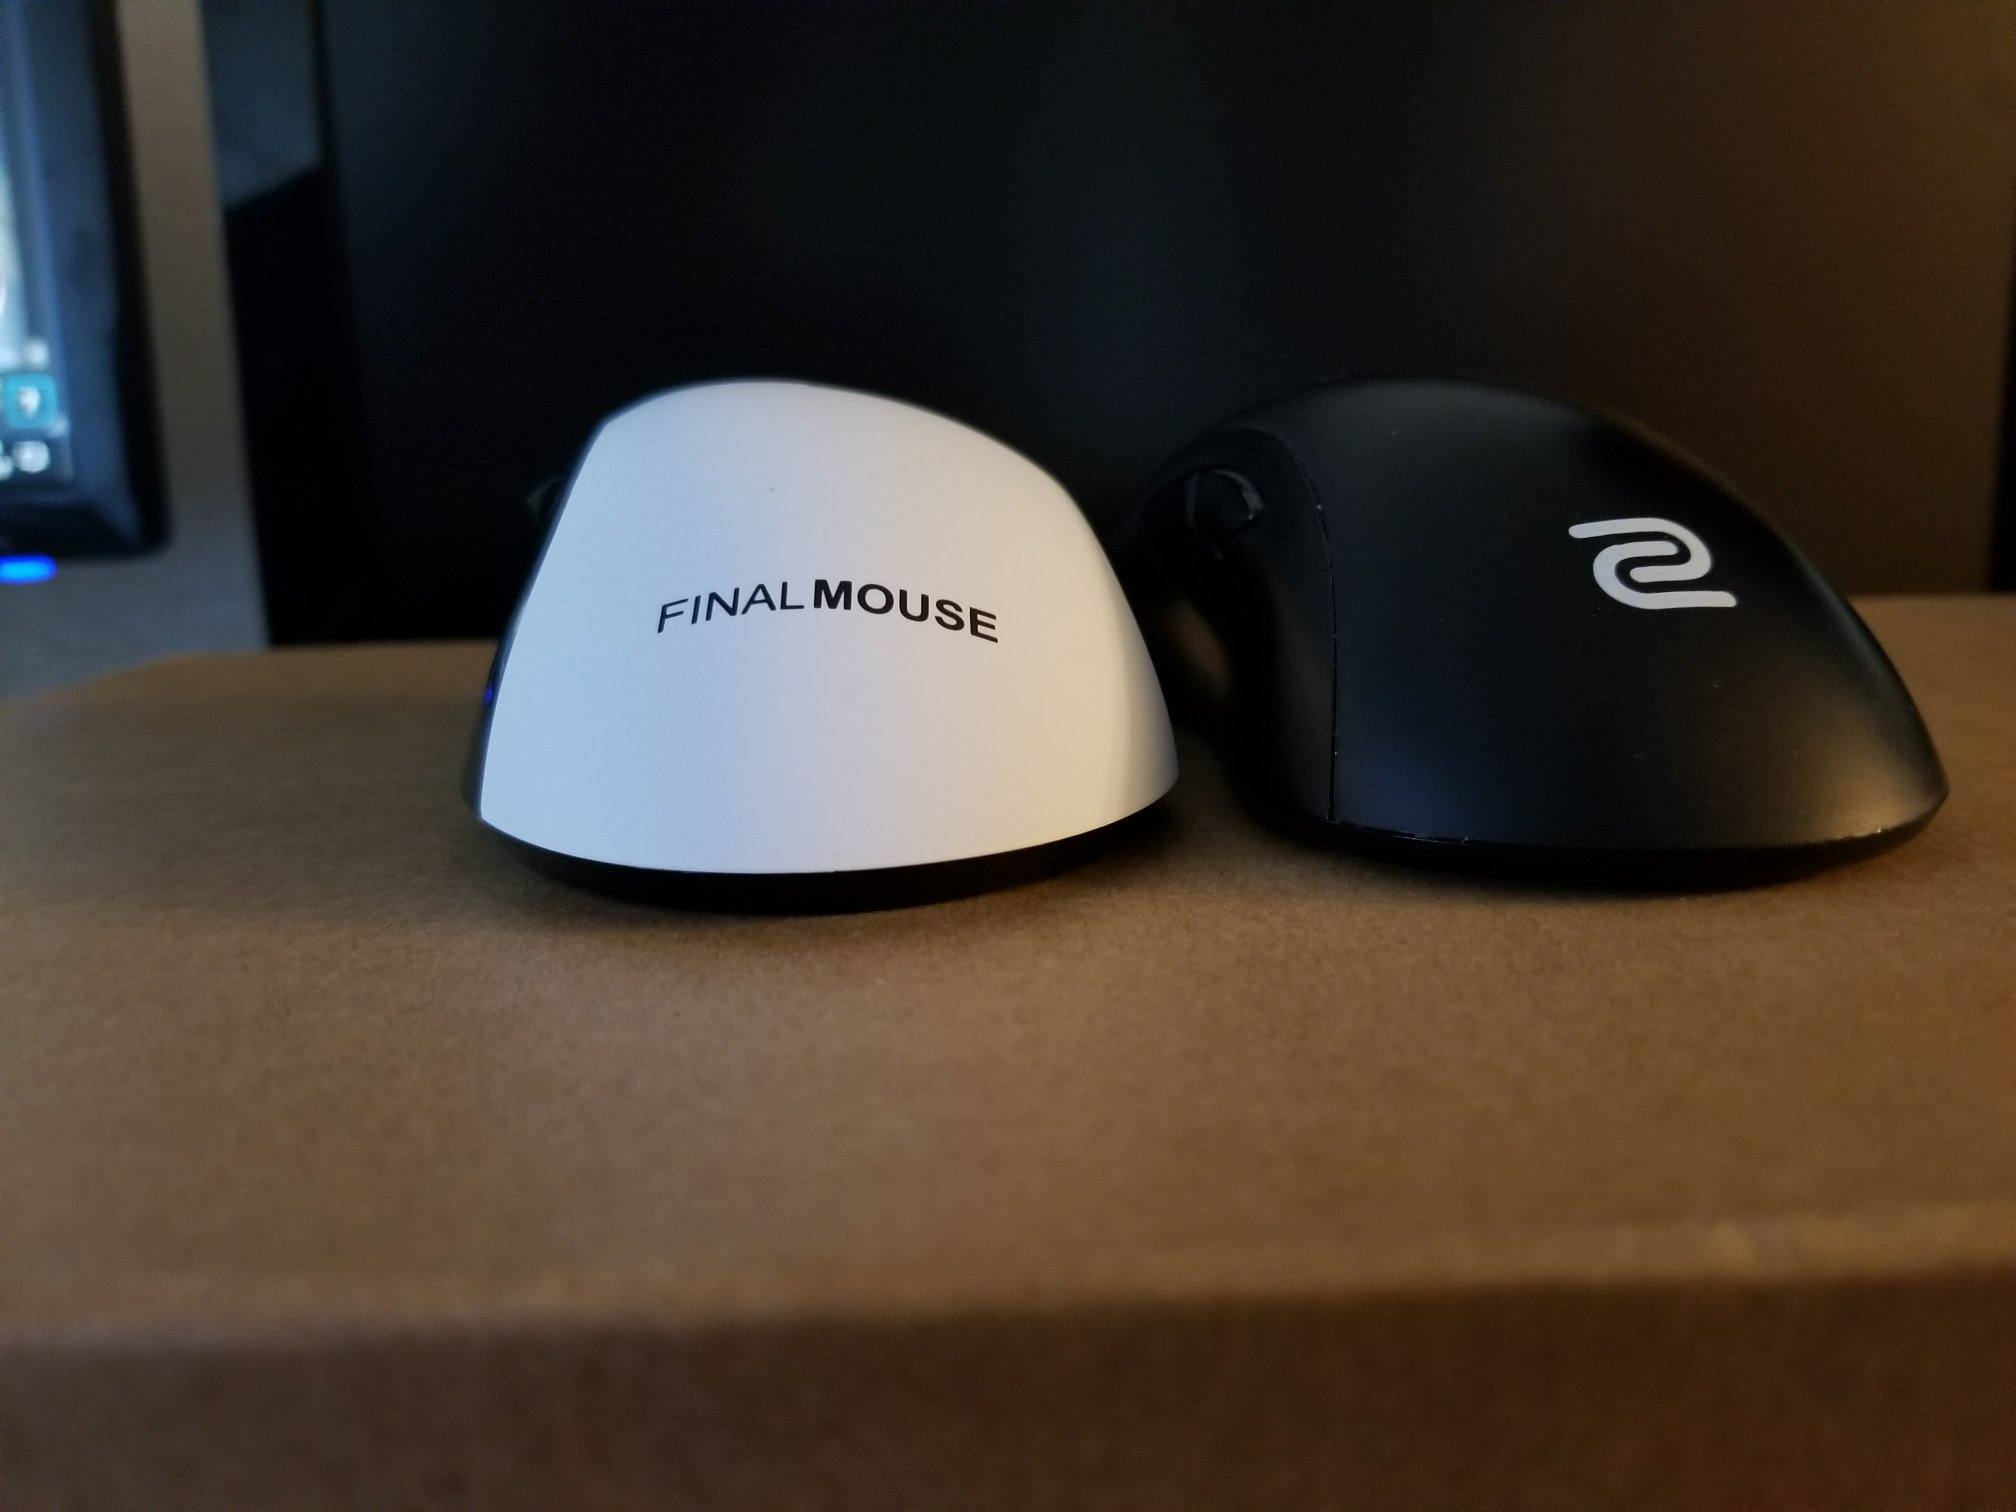 54c1b94ea3b Sponsored] Finalmouse Ergo V2 & Mouse pad overview/Review ...